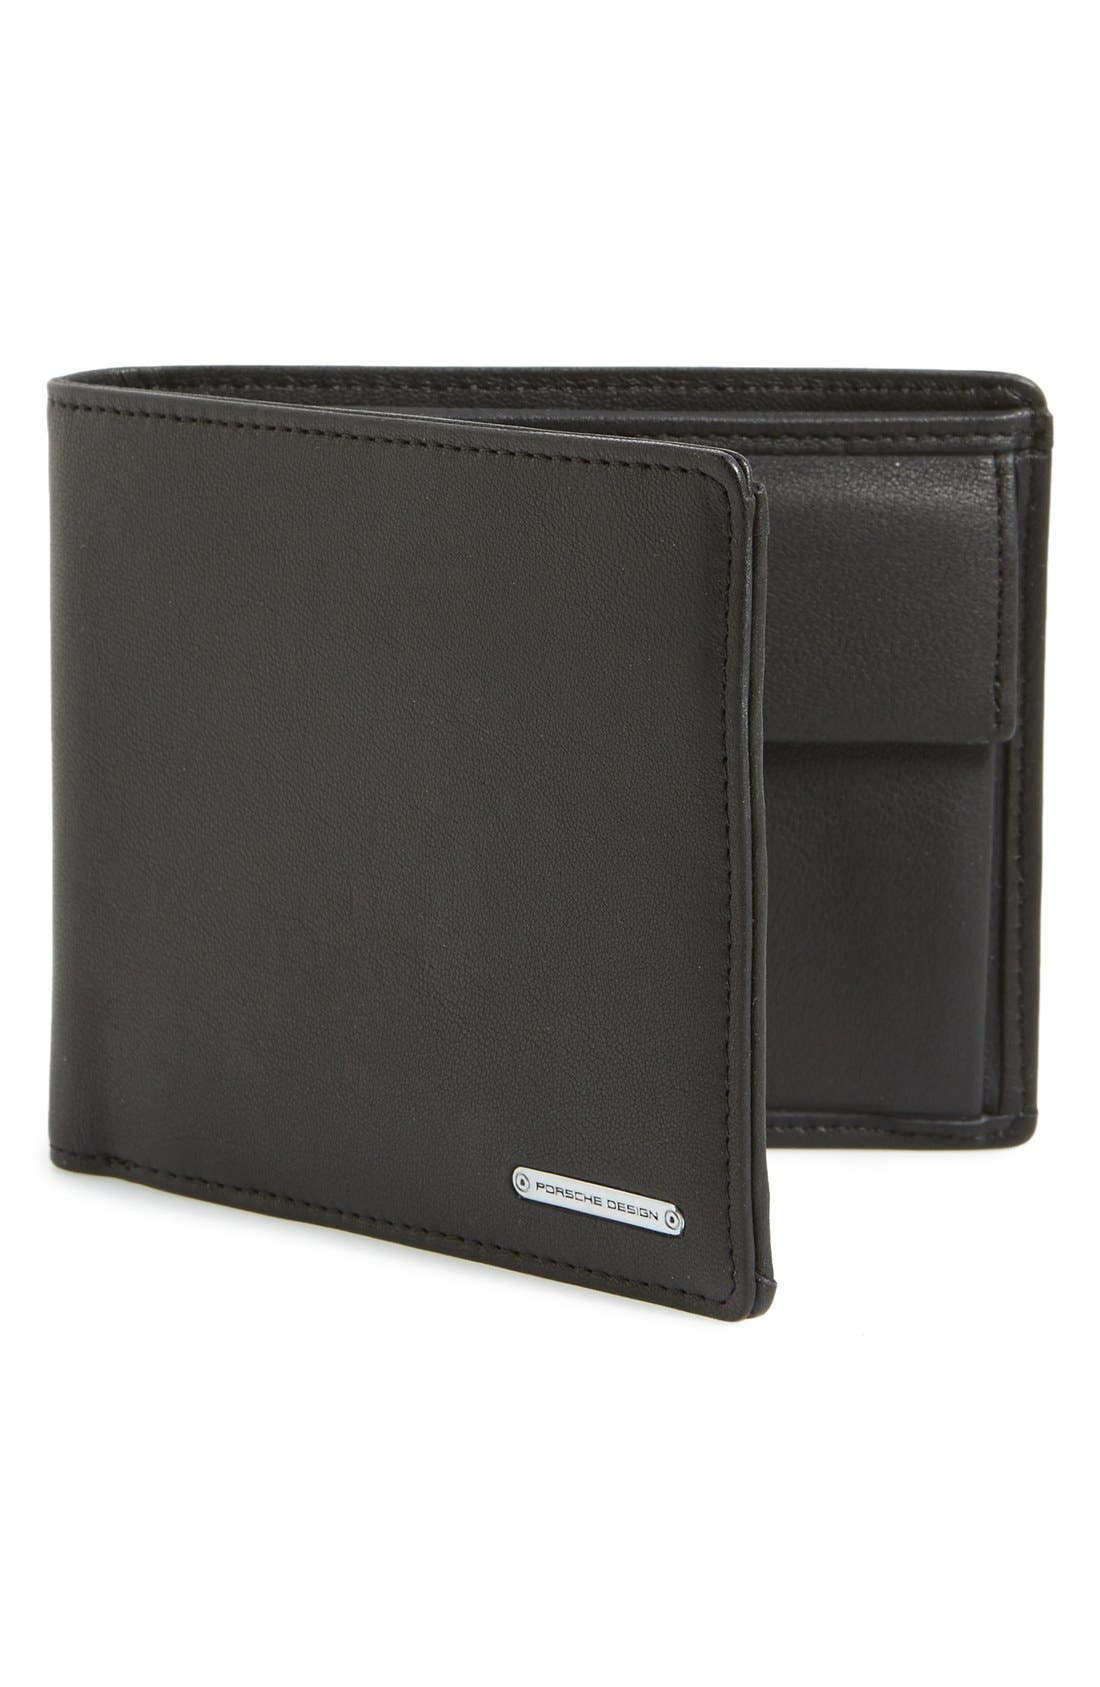 Porsche Design 'CL2 2.0' Leather Billfold Wallet